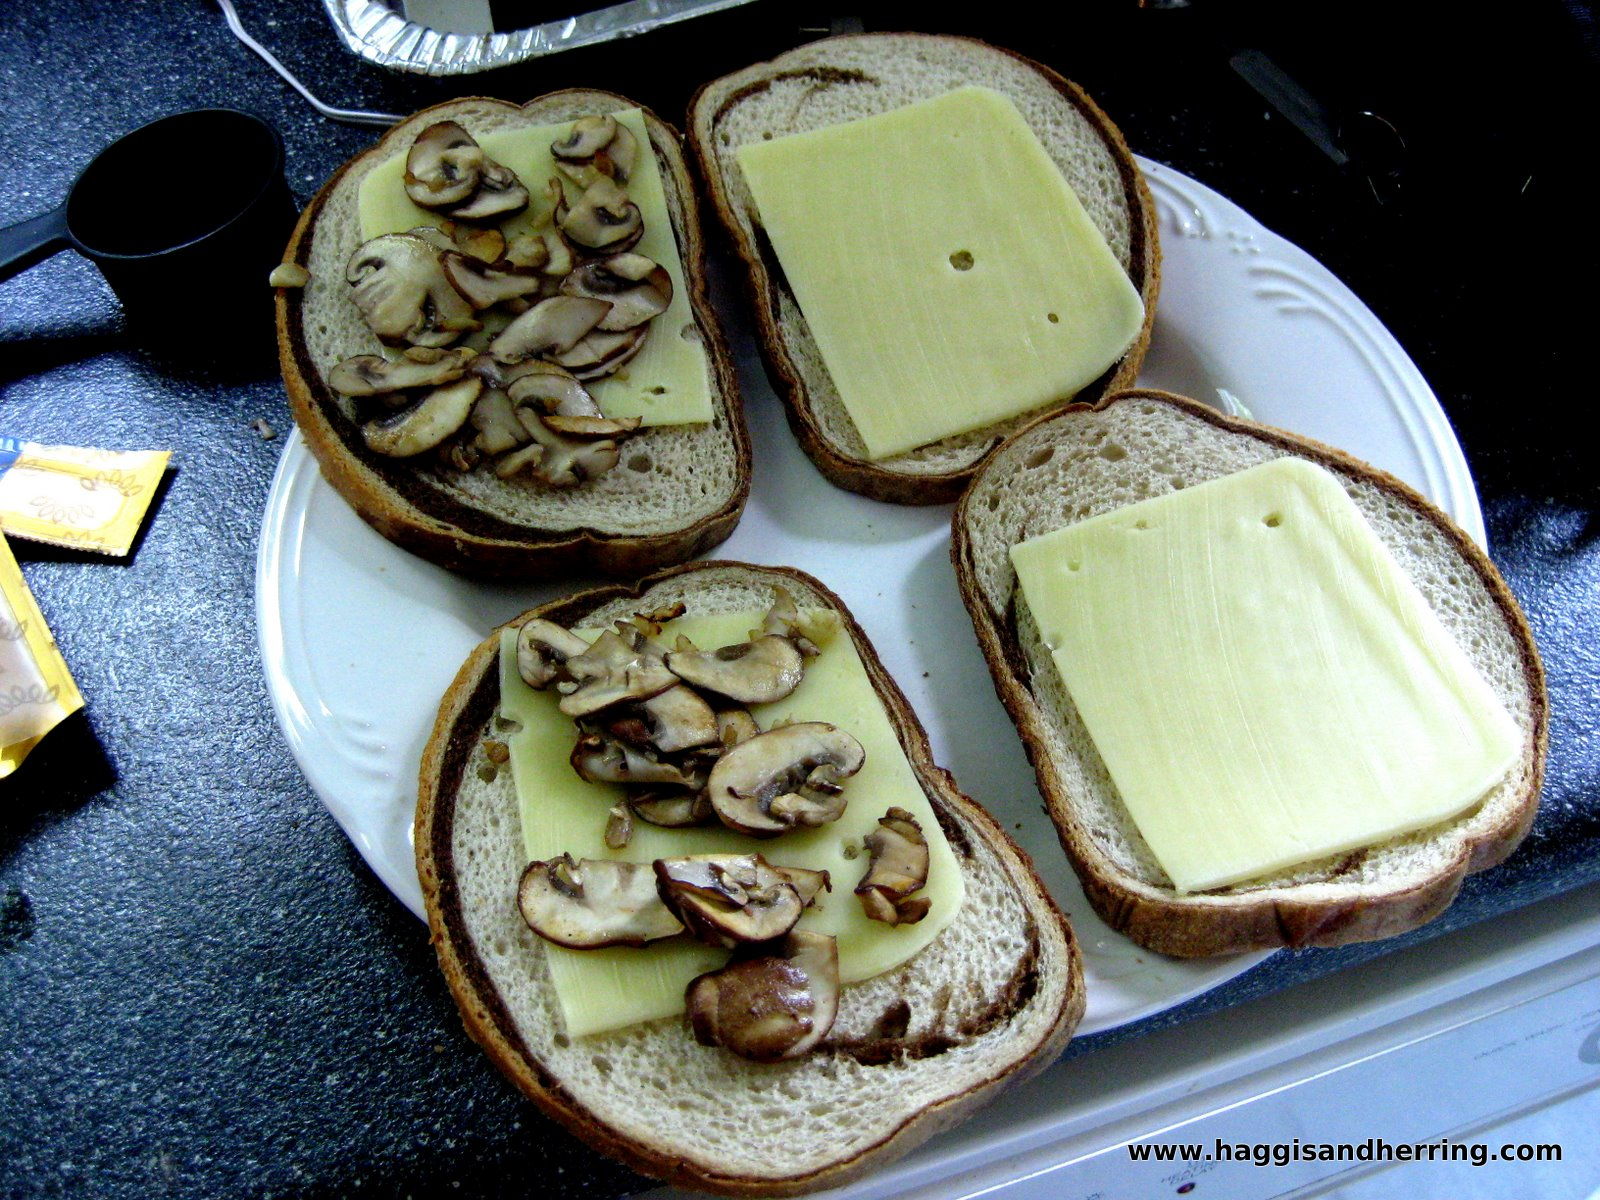 ... Grilled Cheese Sandwiches with Jarlsberg Cheese and Sauteed Mushrooms